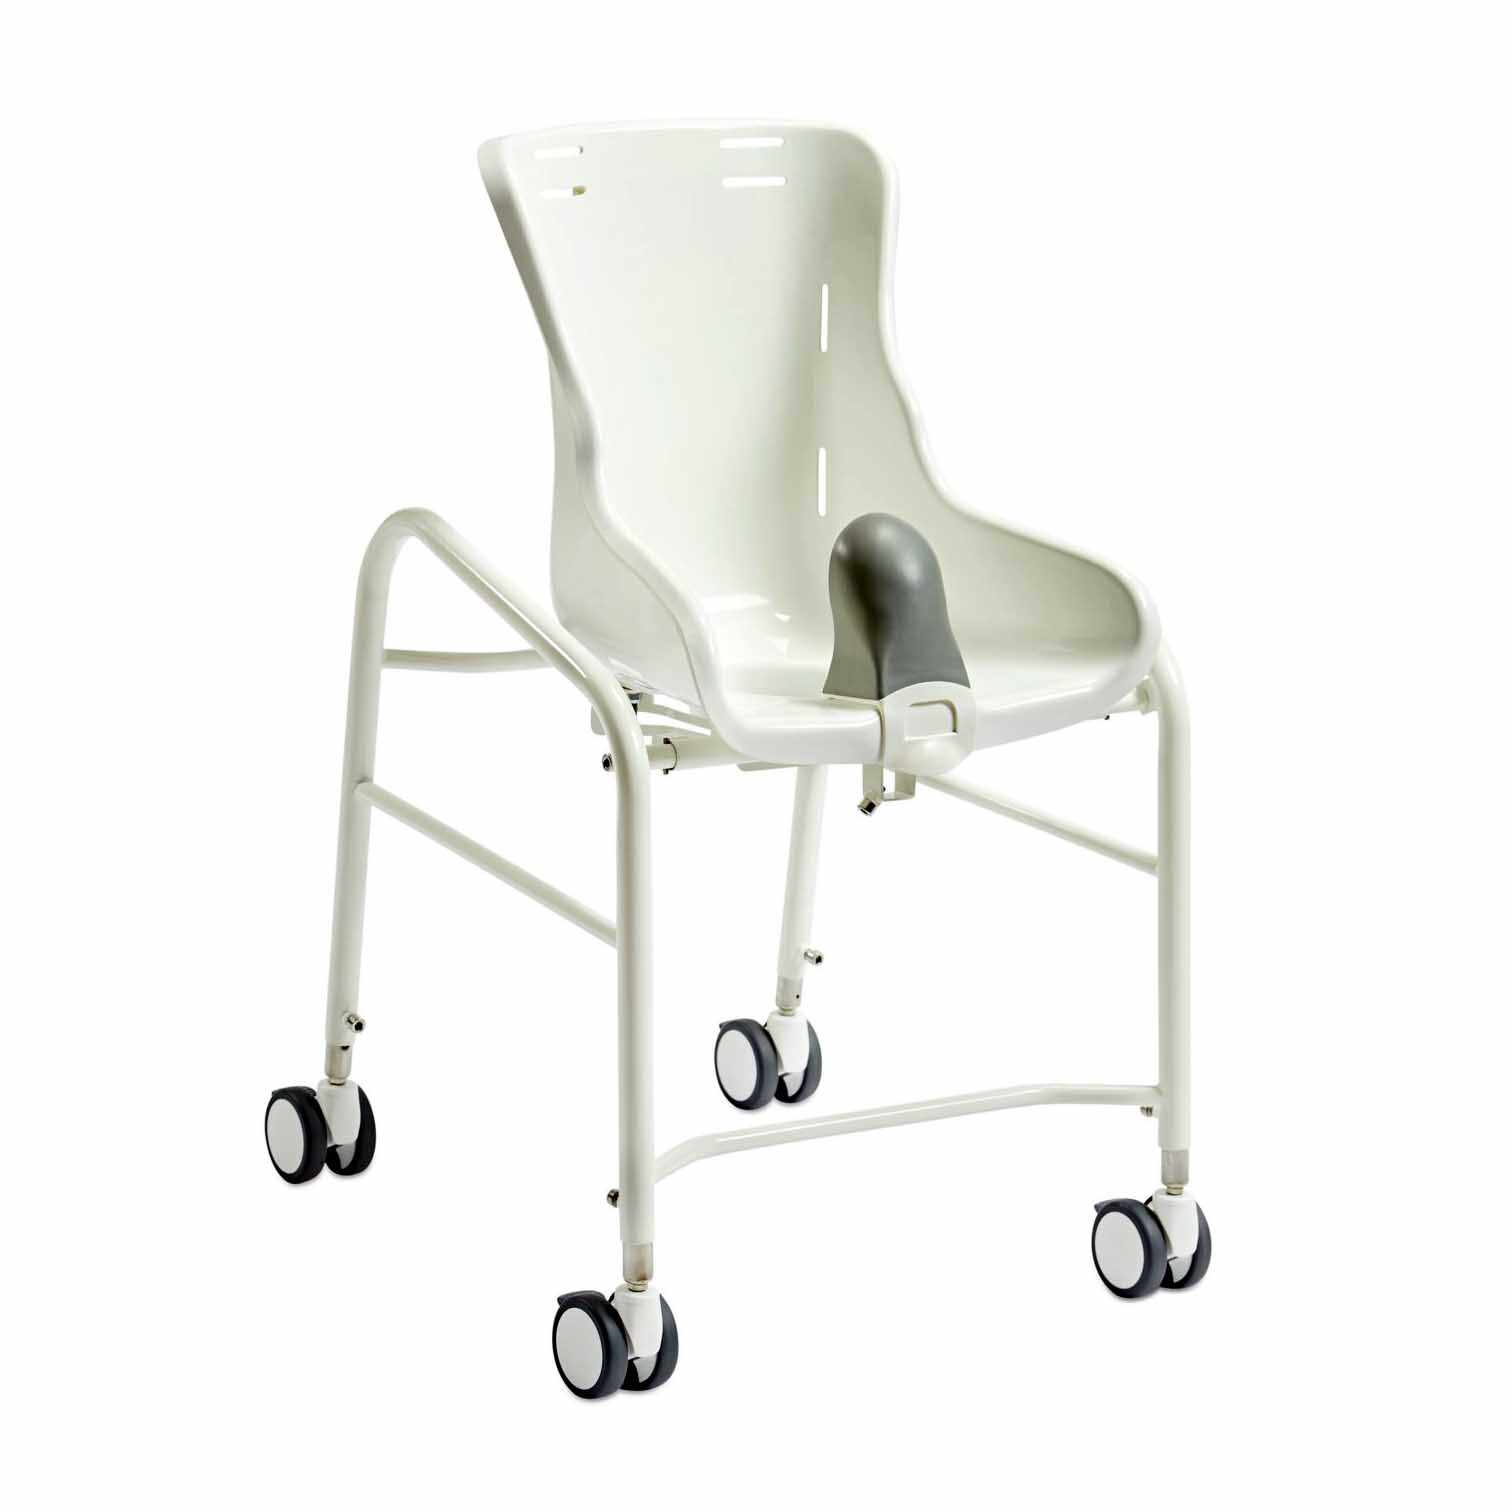 R82 Swan shower commode chair